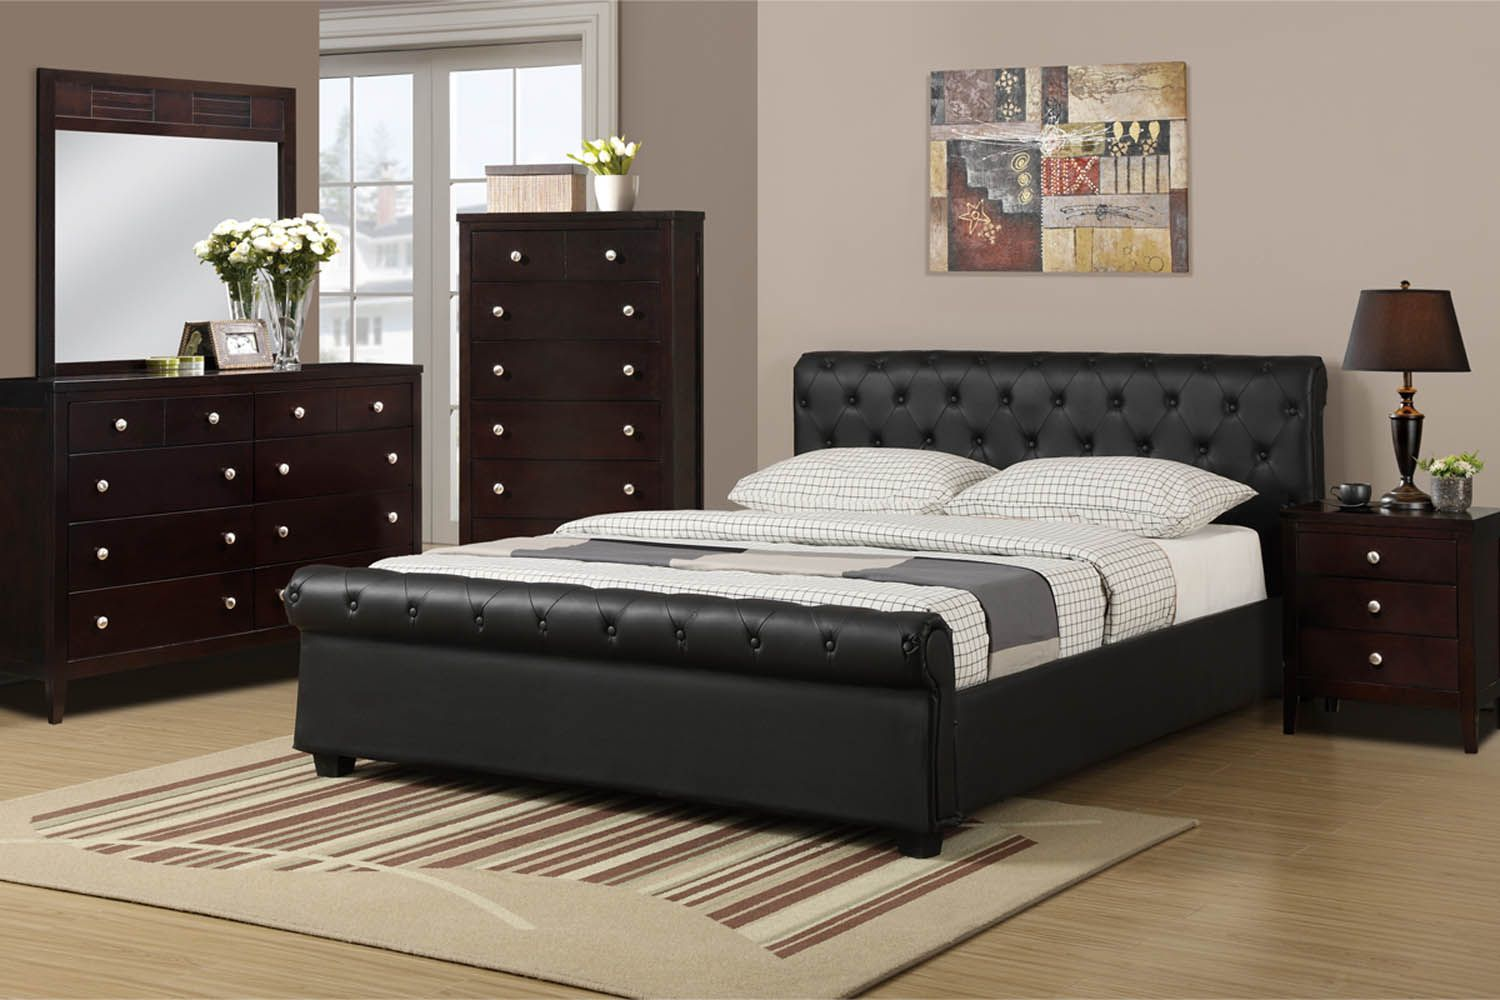 leather black queen bed frame with nightstand and dressers mirror ...